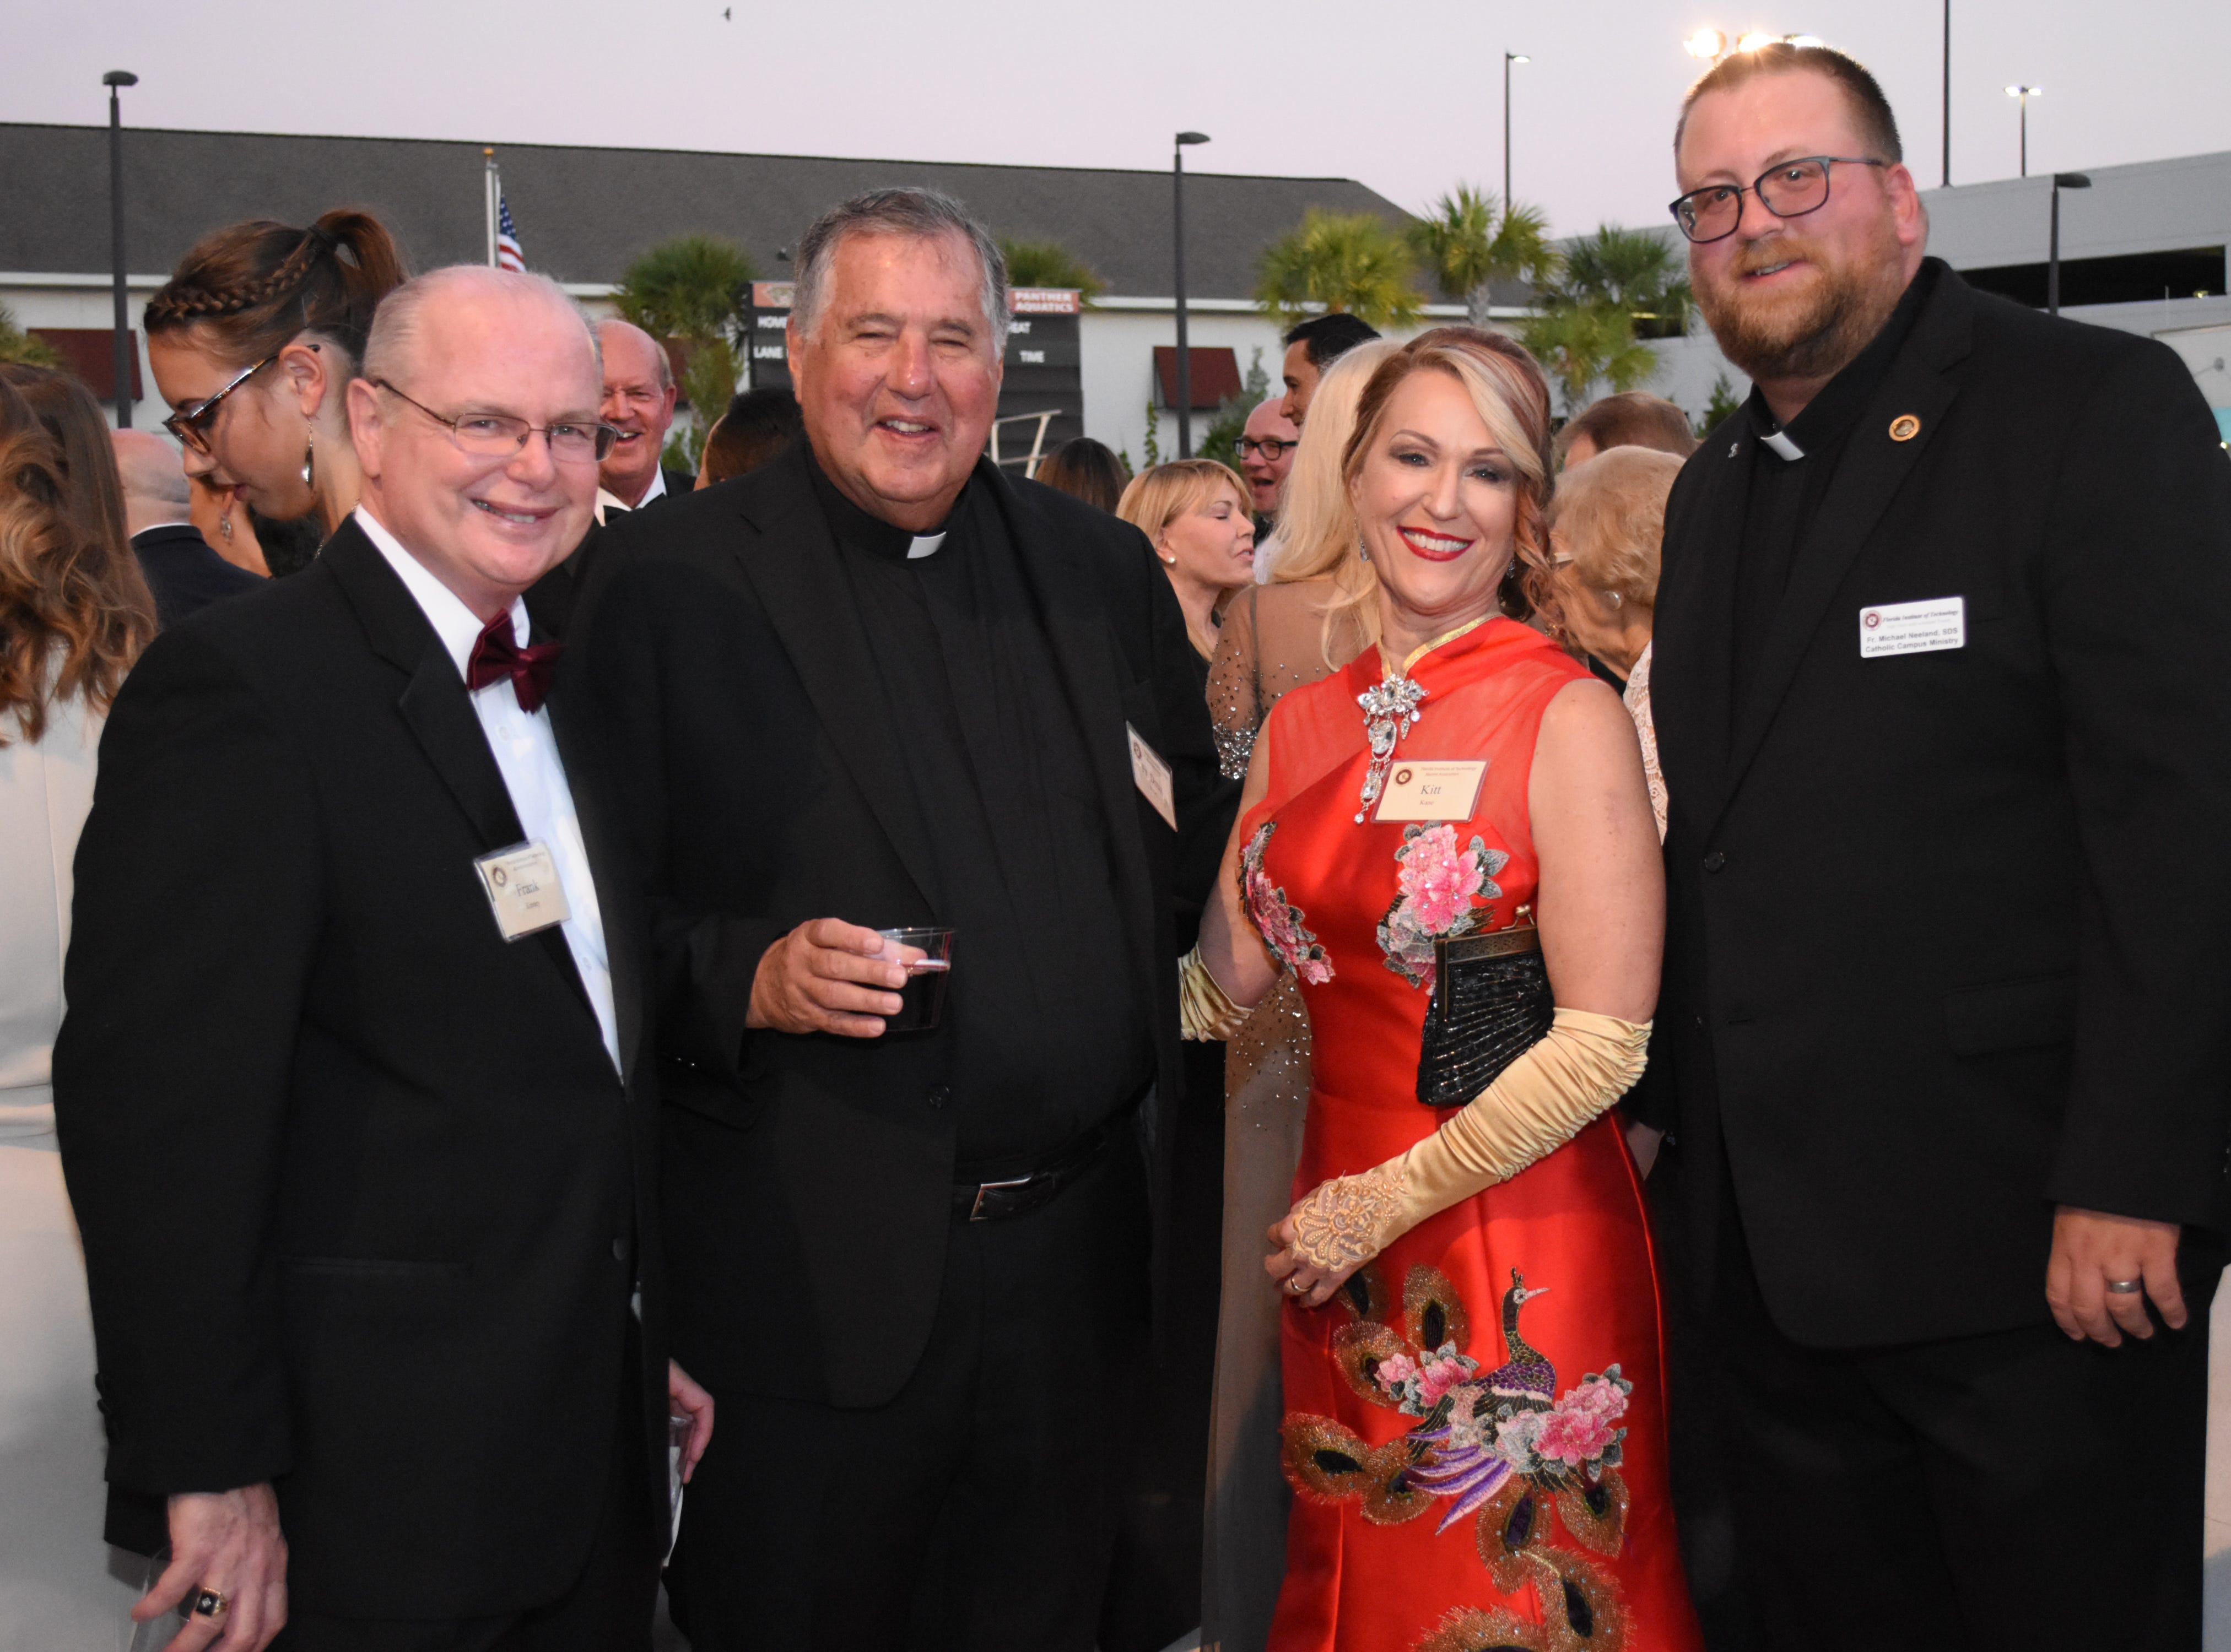 Frank Kinney, Fr. Doug Bailey, SDS, Kitt Kane and Fr. Michael Neeland, SDS, at Florida Tech's 60th Anniversary Homecoming Gala Oct. 13, 2018, at the Clemente Center.